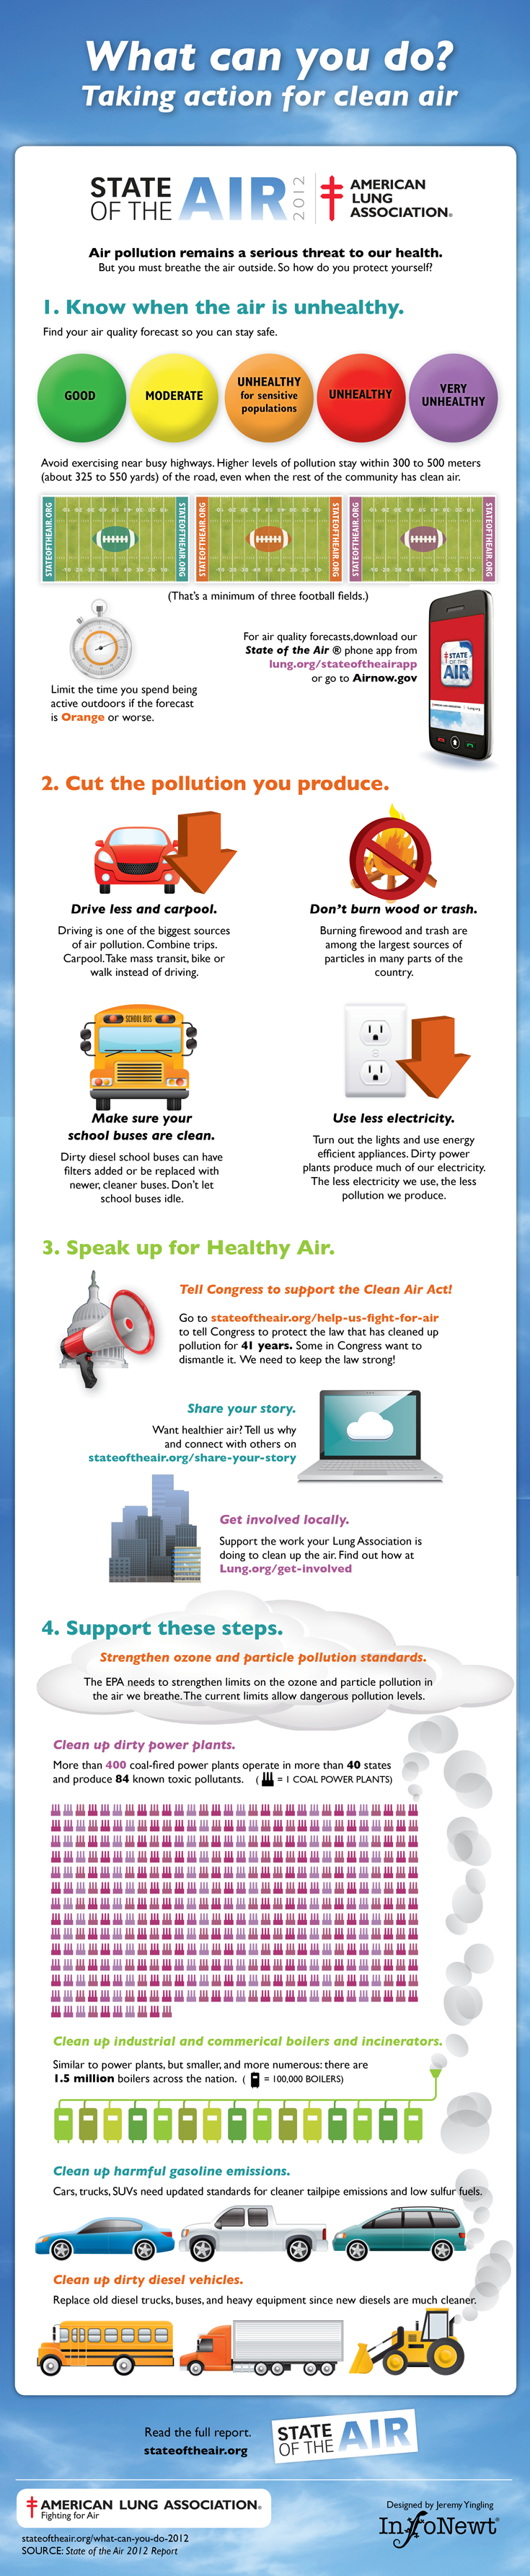 Taking Action for Clean Air